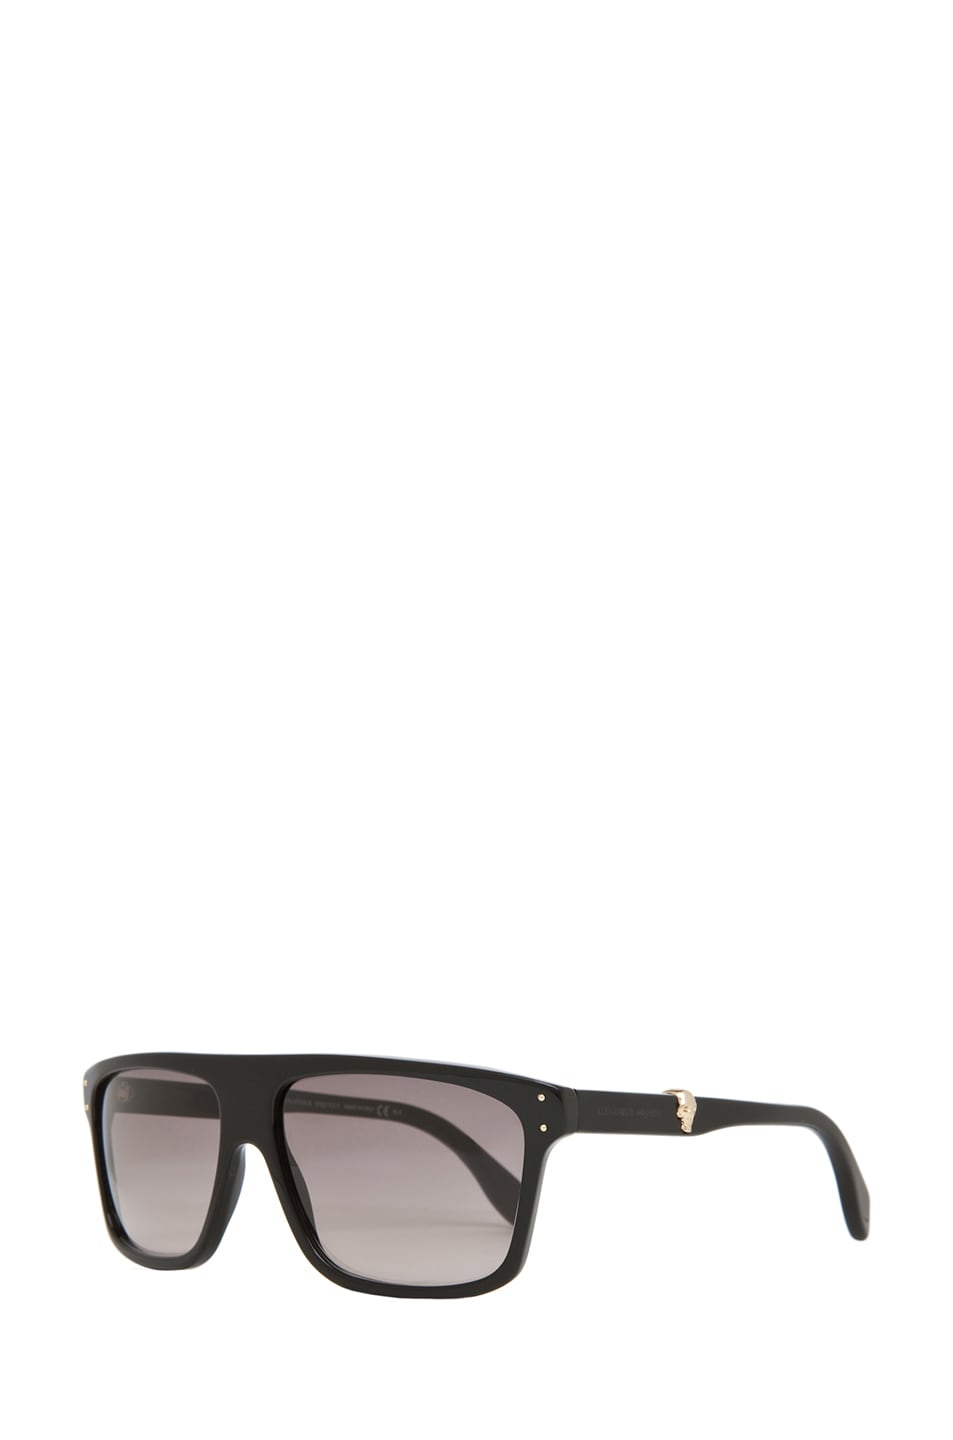 Image 2 of Alexander McQueen 4209 Sunglasses in Black & Gray Gradient